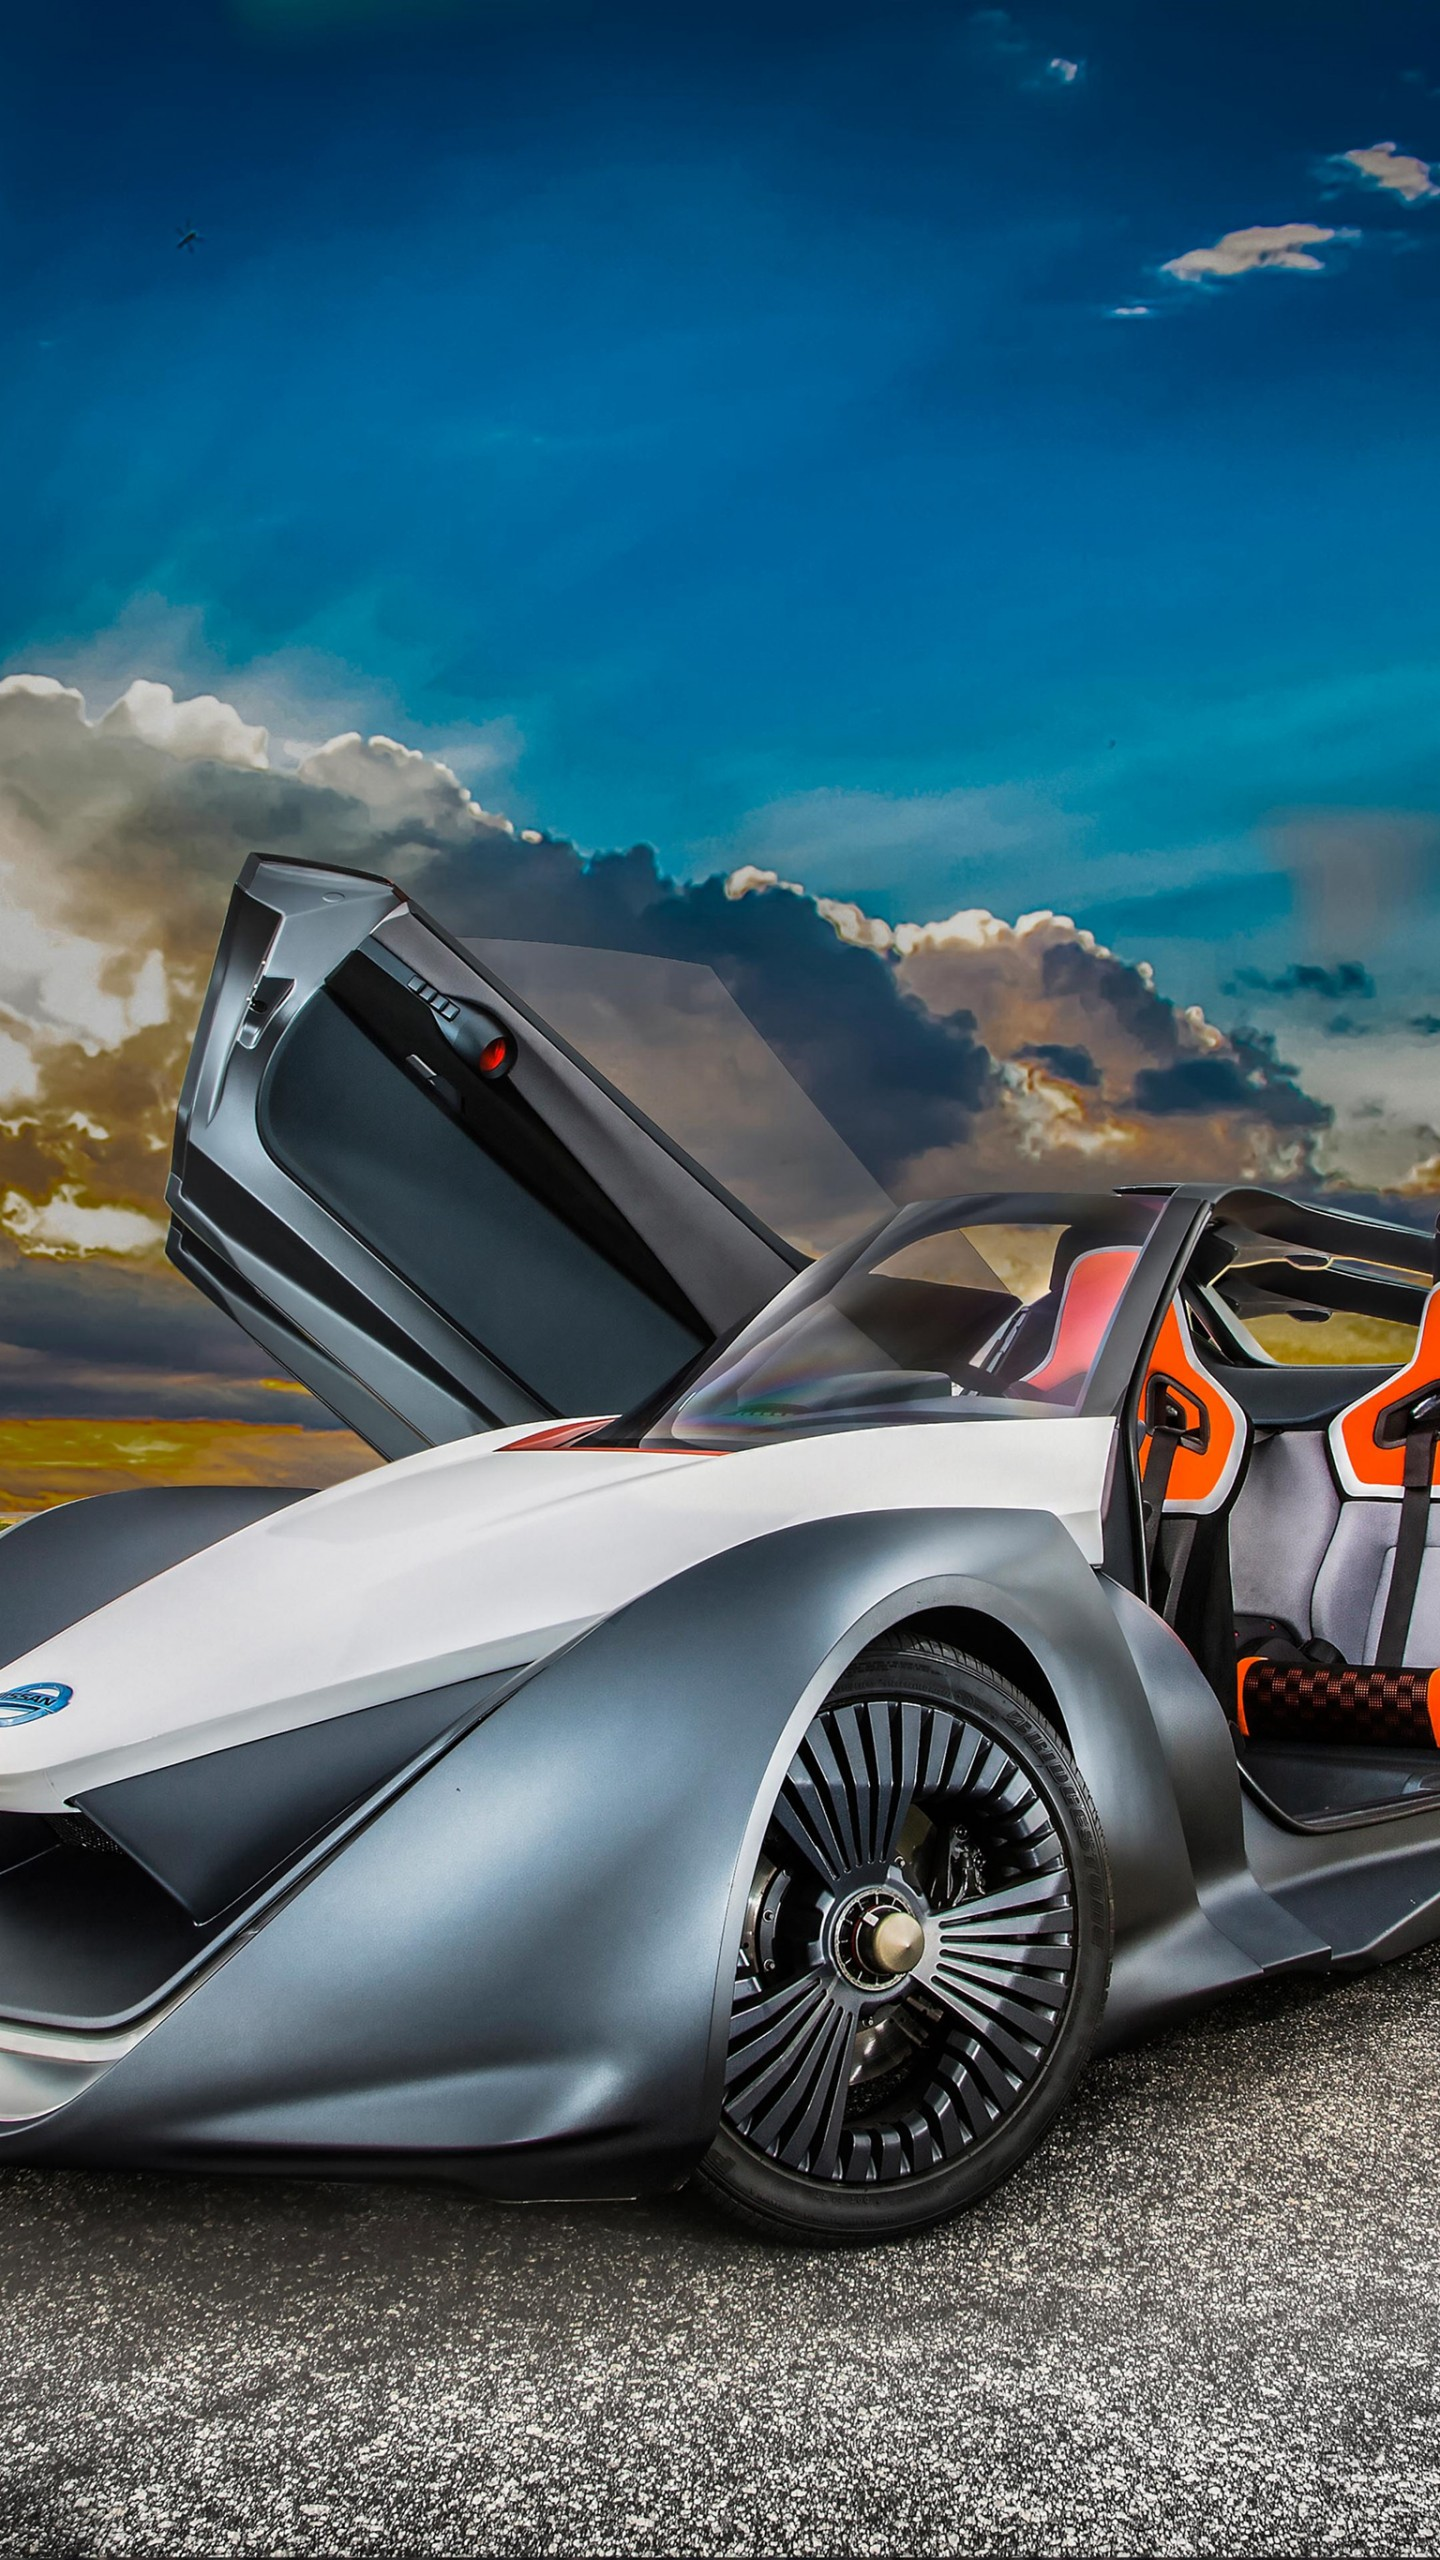 Hd Wallpaper Cars 2015 Wallpaper Nissan Bladeglider Supercar Electric Cars